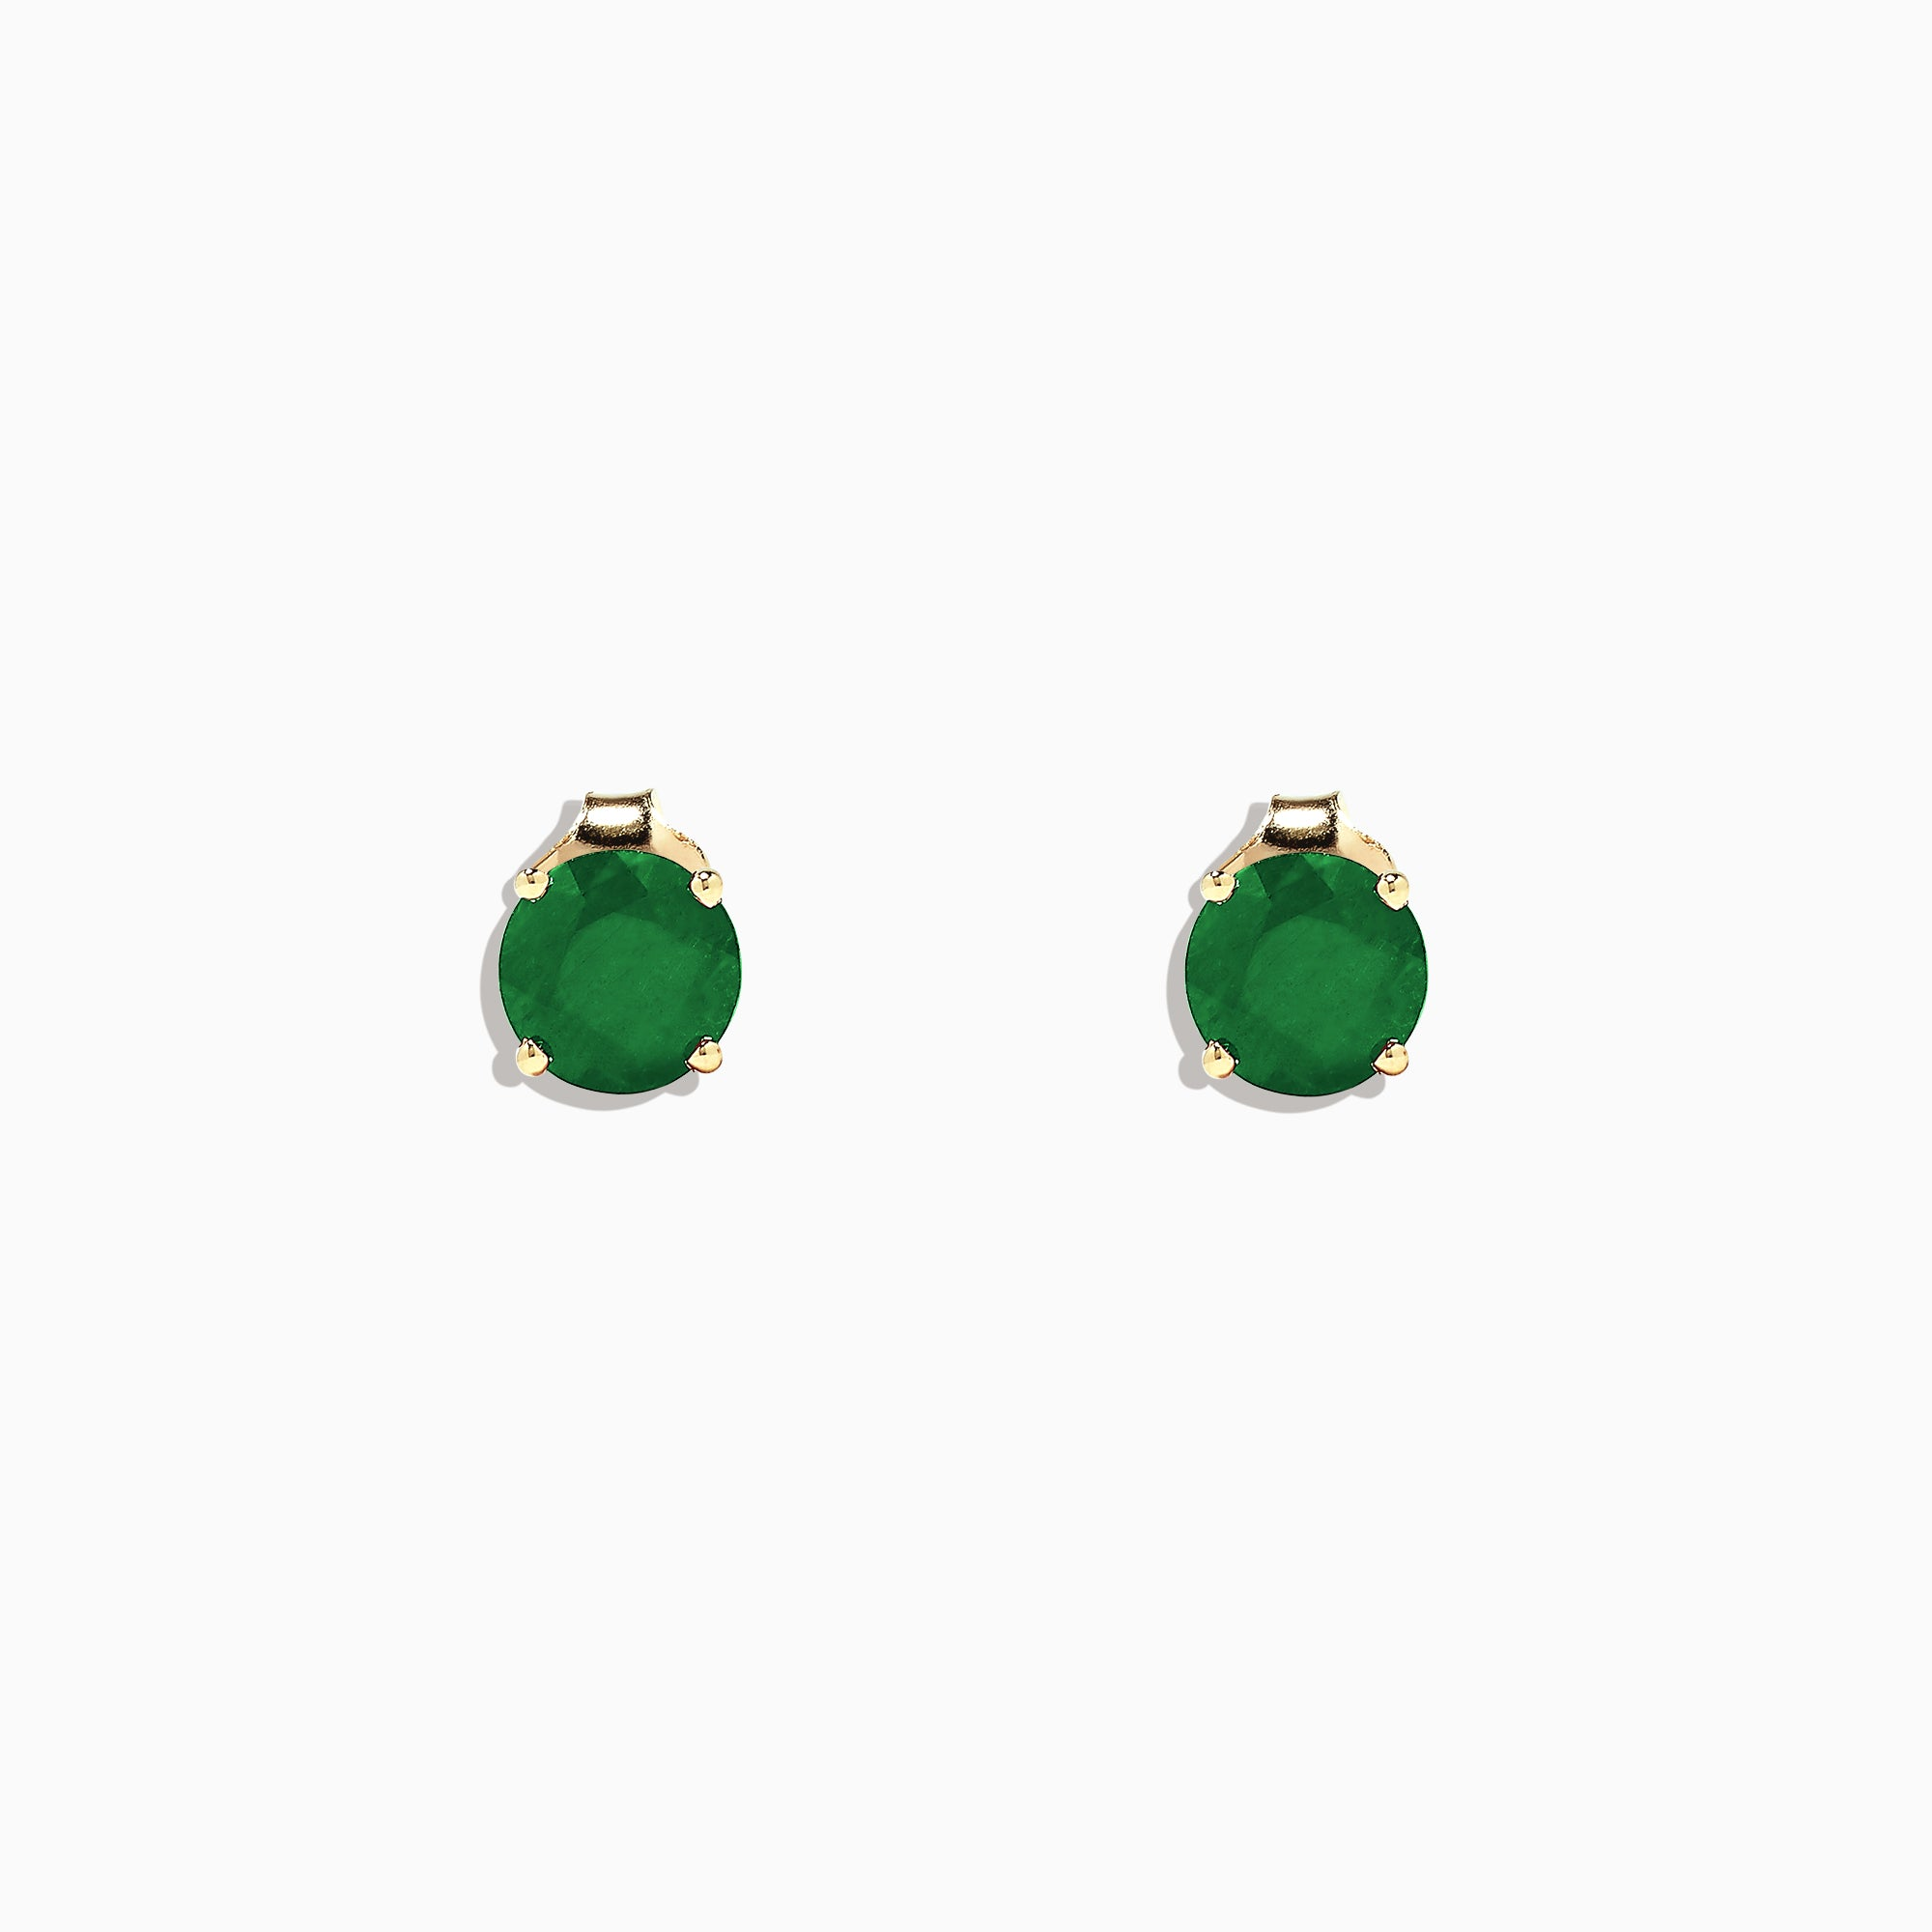 Effy Brasilica 14K Yellow Gold Emerald Stud Earrings, 1.62 TCW